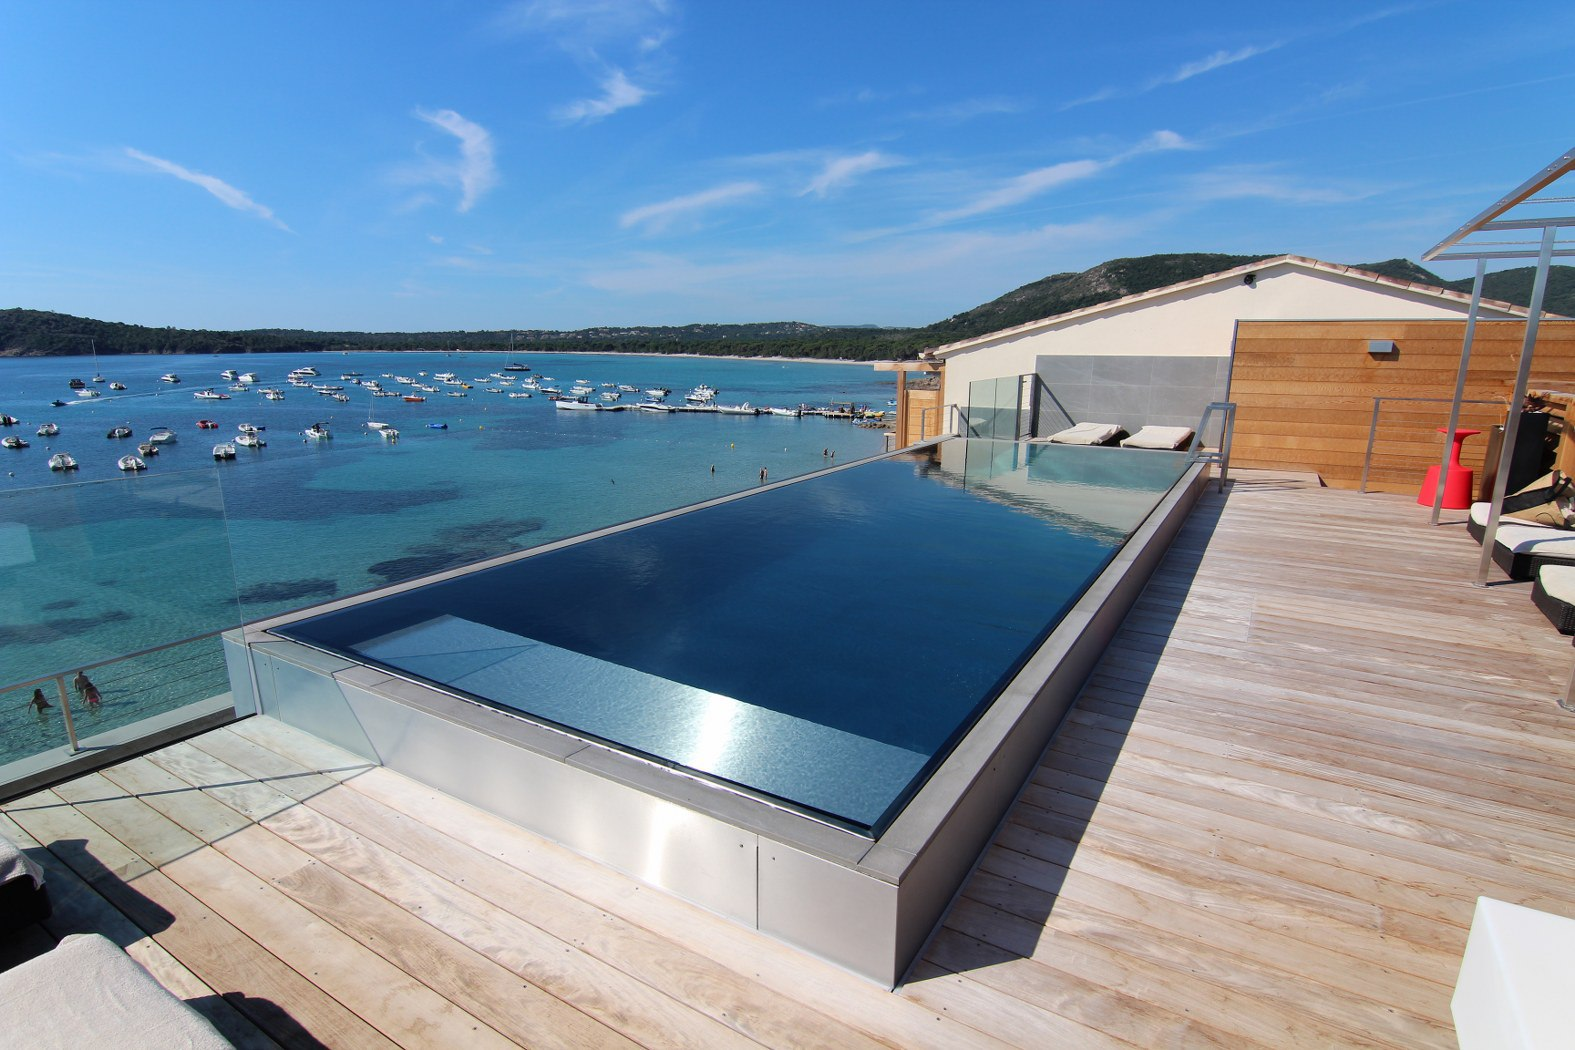 Stainless Steel Pools | Paramount Pools